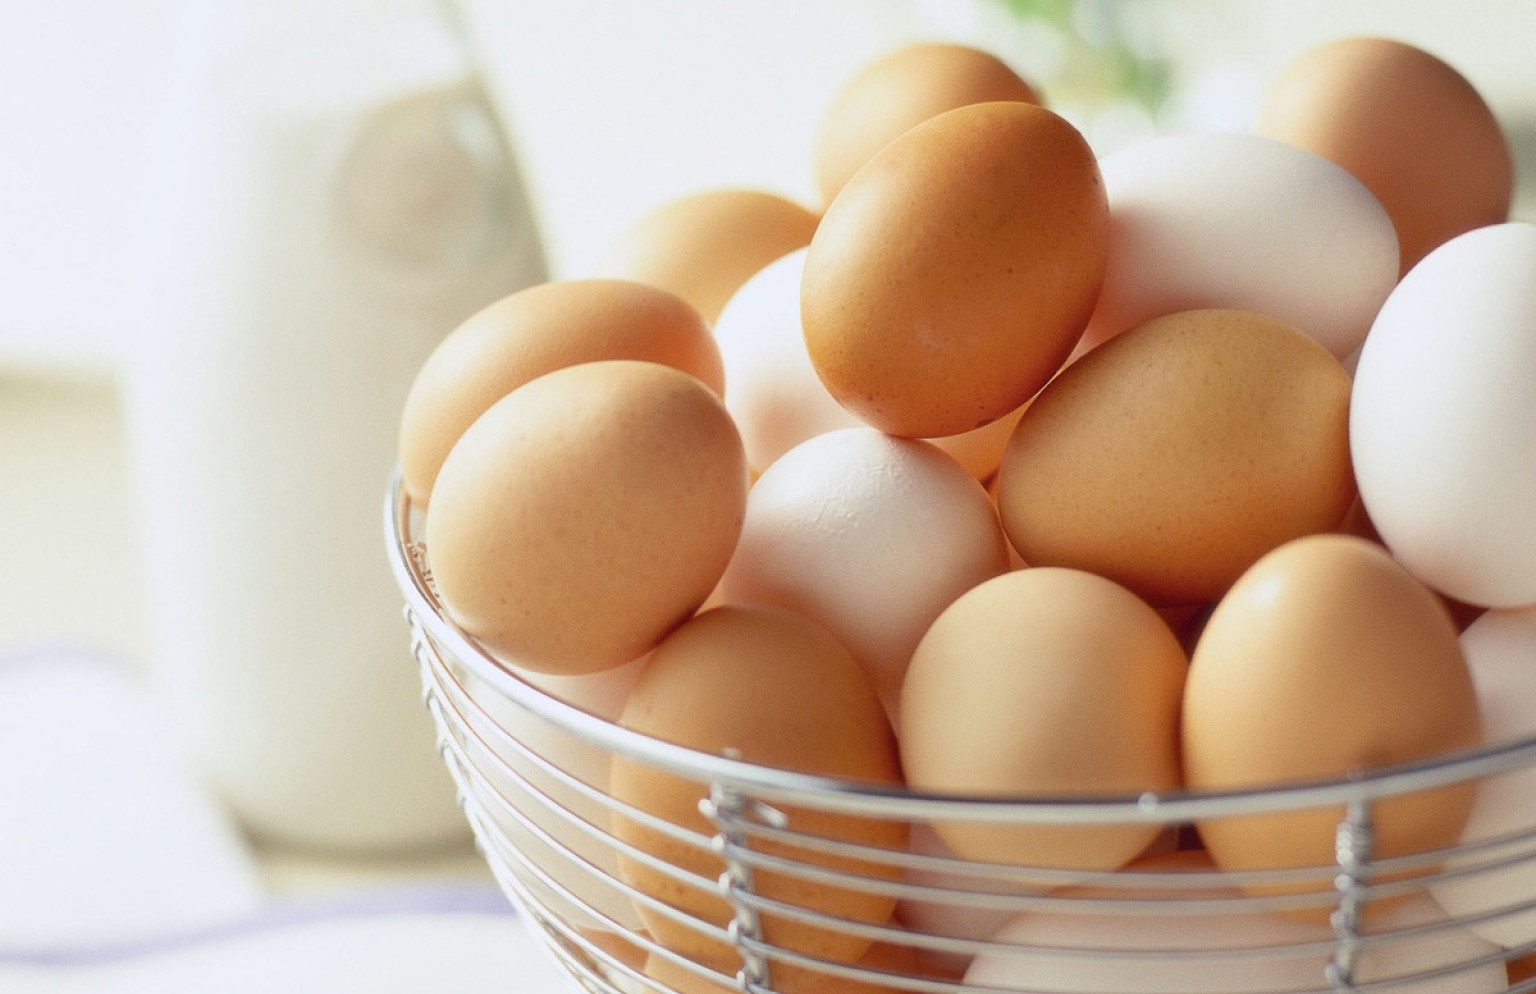 Dr. Walaa Abdel Hamid warns against consuming eggs and milk for Corona patients and recommends taking 3 types of medicines 1